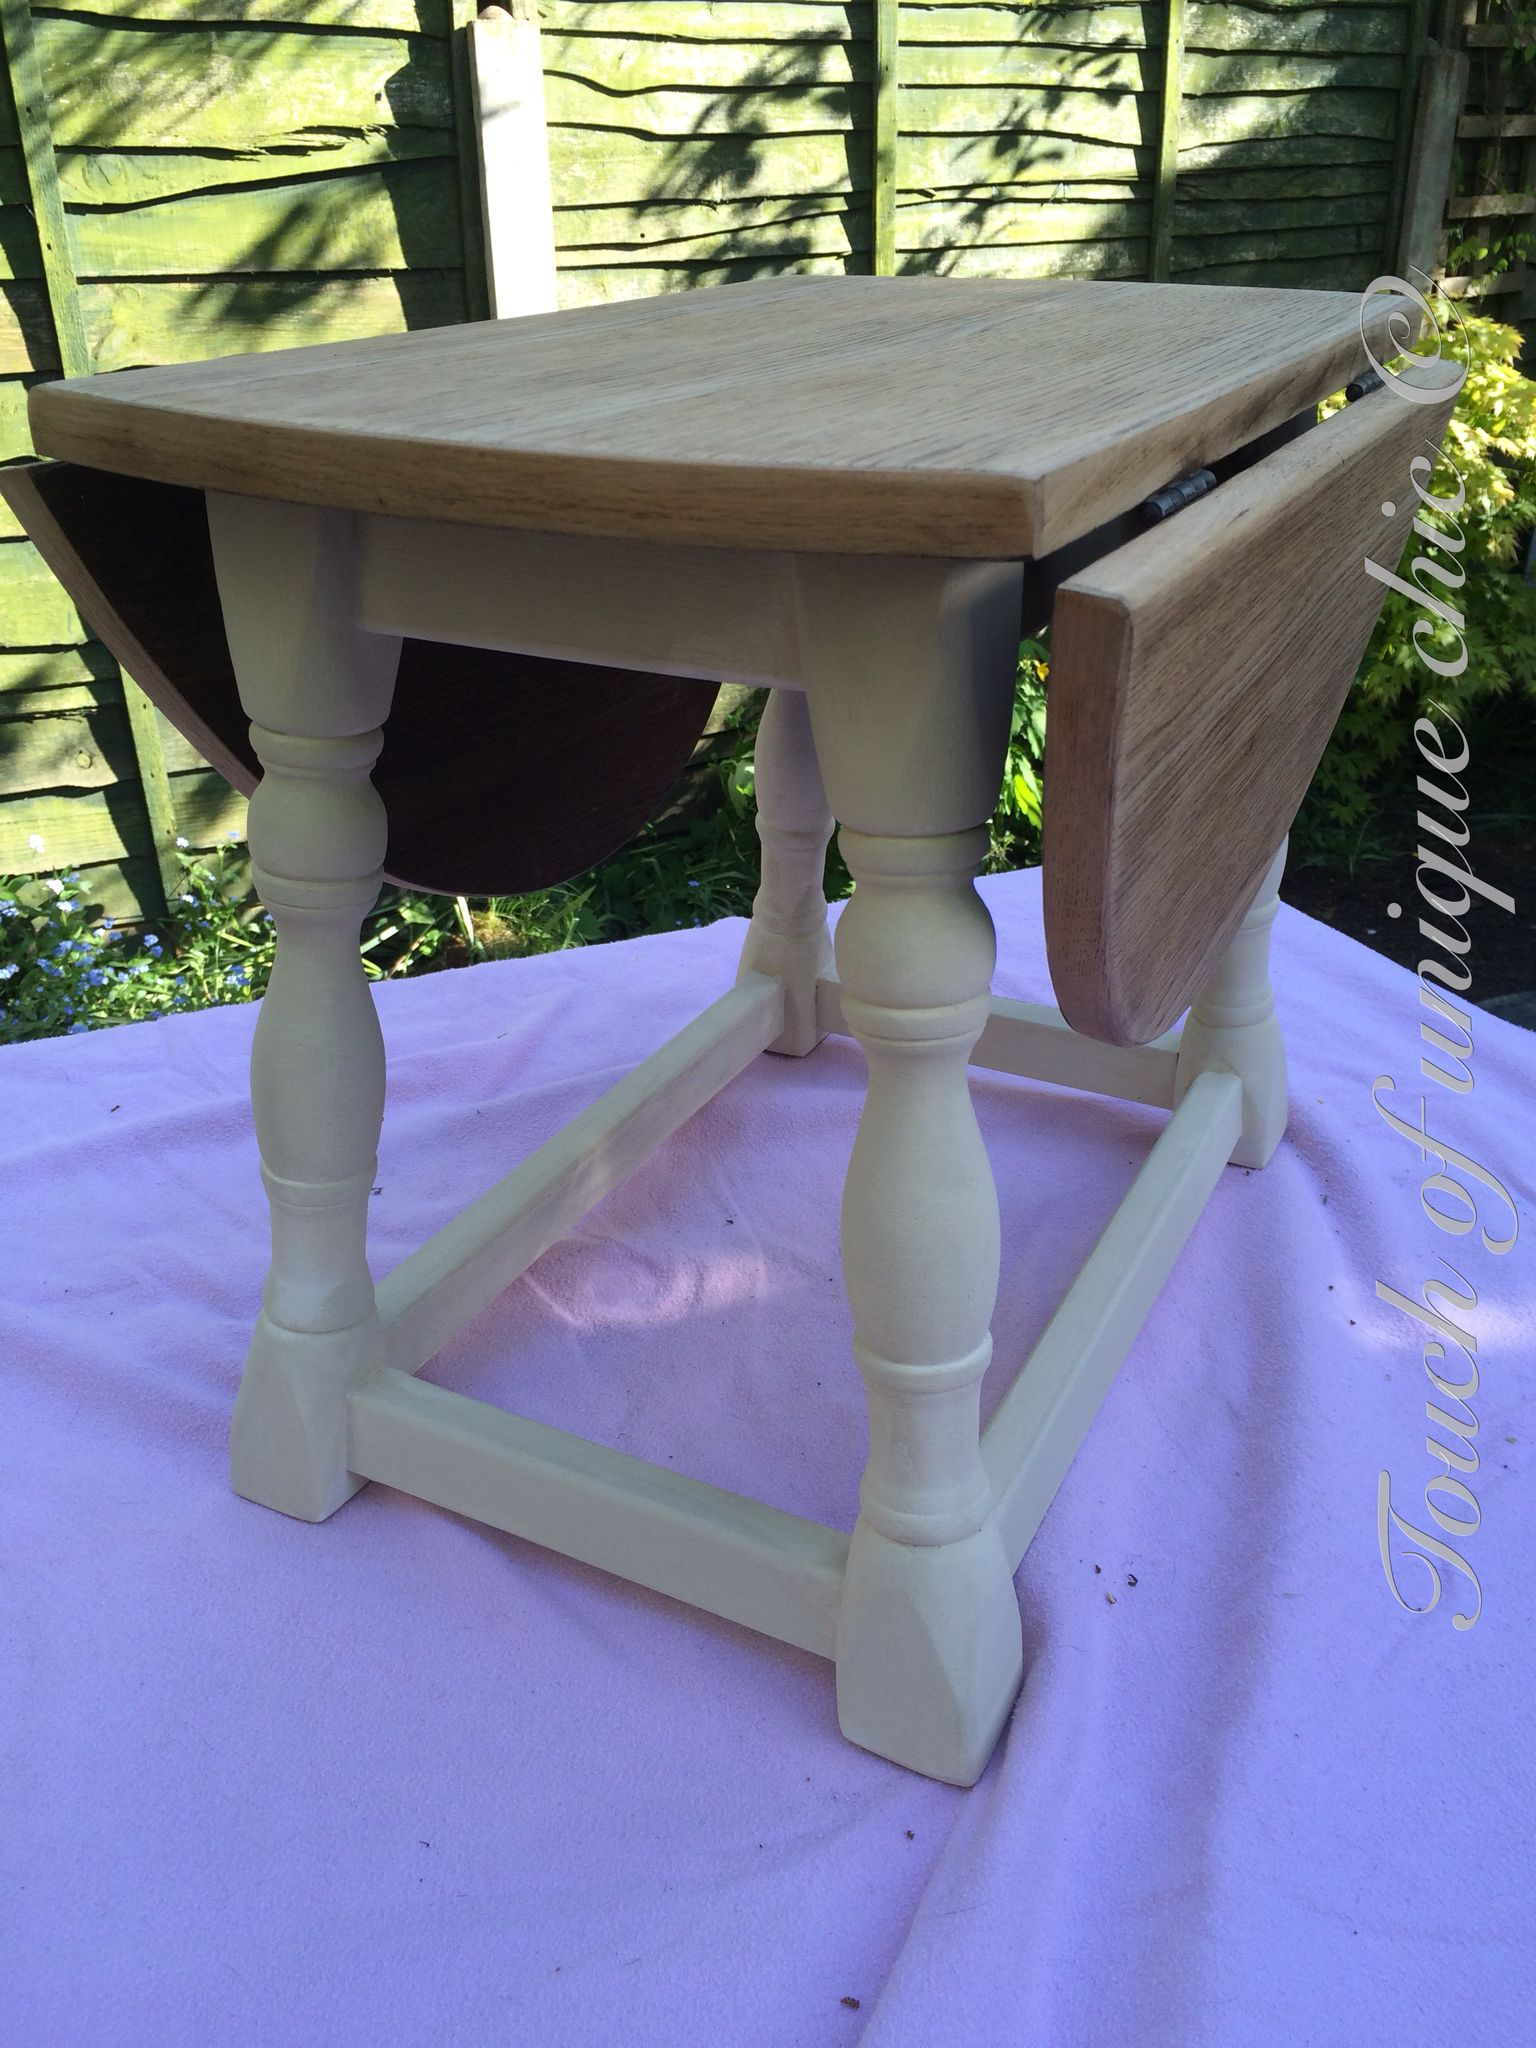 Drop leaf coffee table painted in annie sloan old ochre ... Ideas For Painting Kitchen Table Drop Leaf on oval tables for kitchen, pedestal tables for kitchen, pub tables for kitchen,